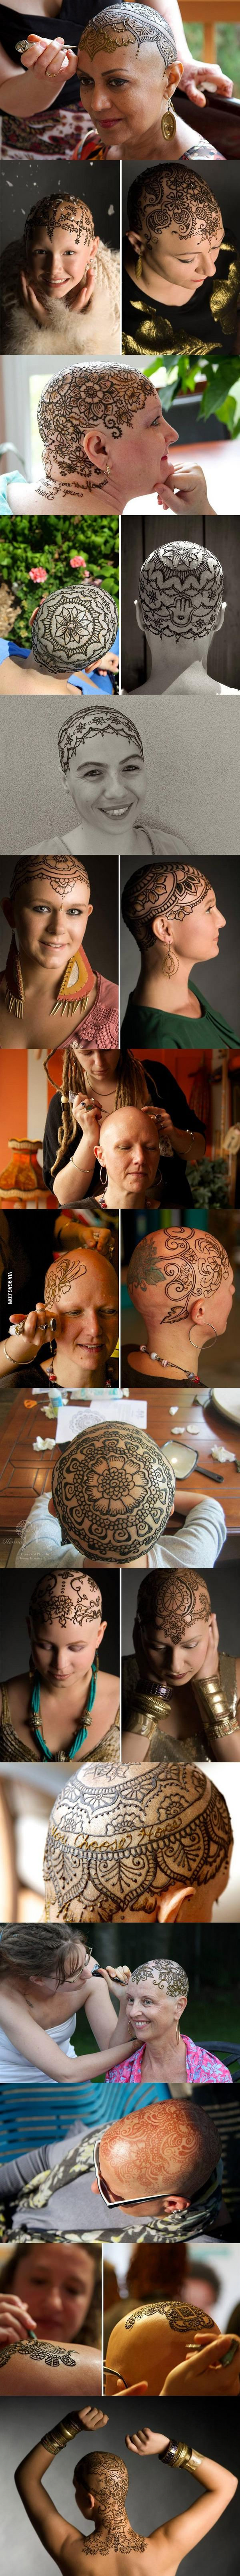 Elegant Henna Tattoo Crowns Help Cancer Patients Cope With Their Hair Loss.